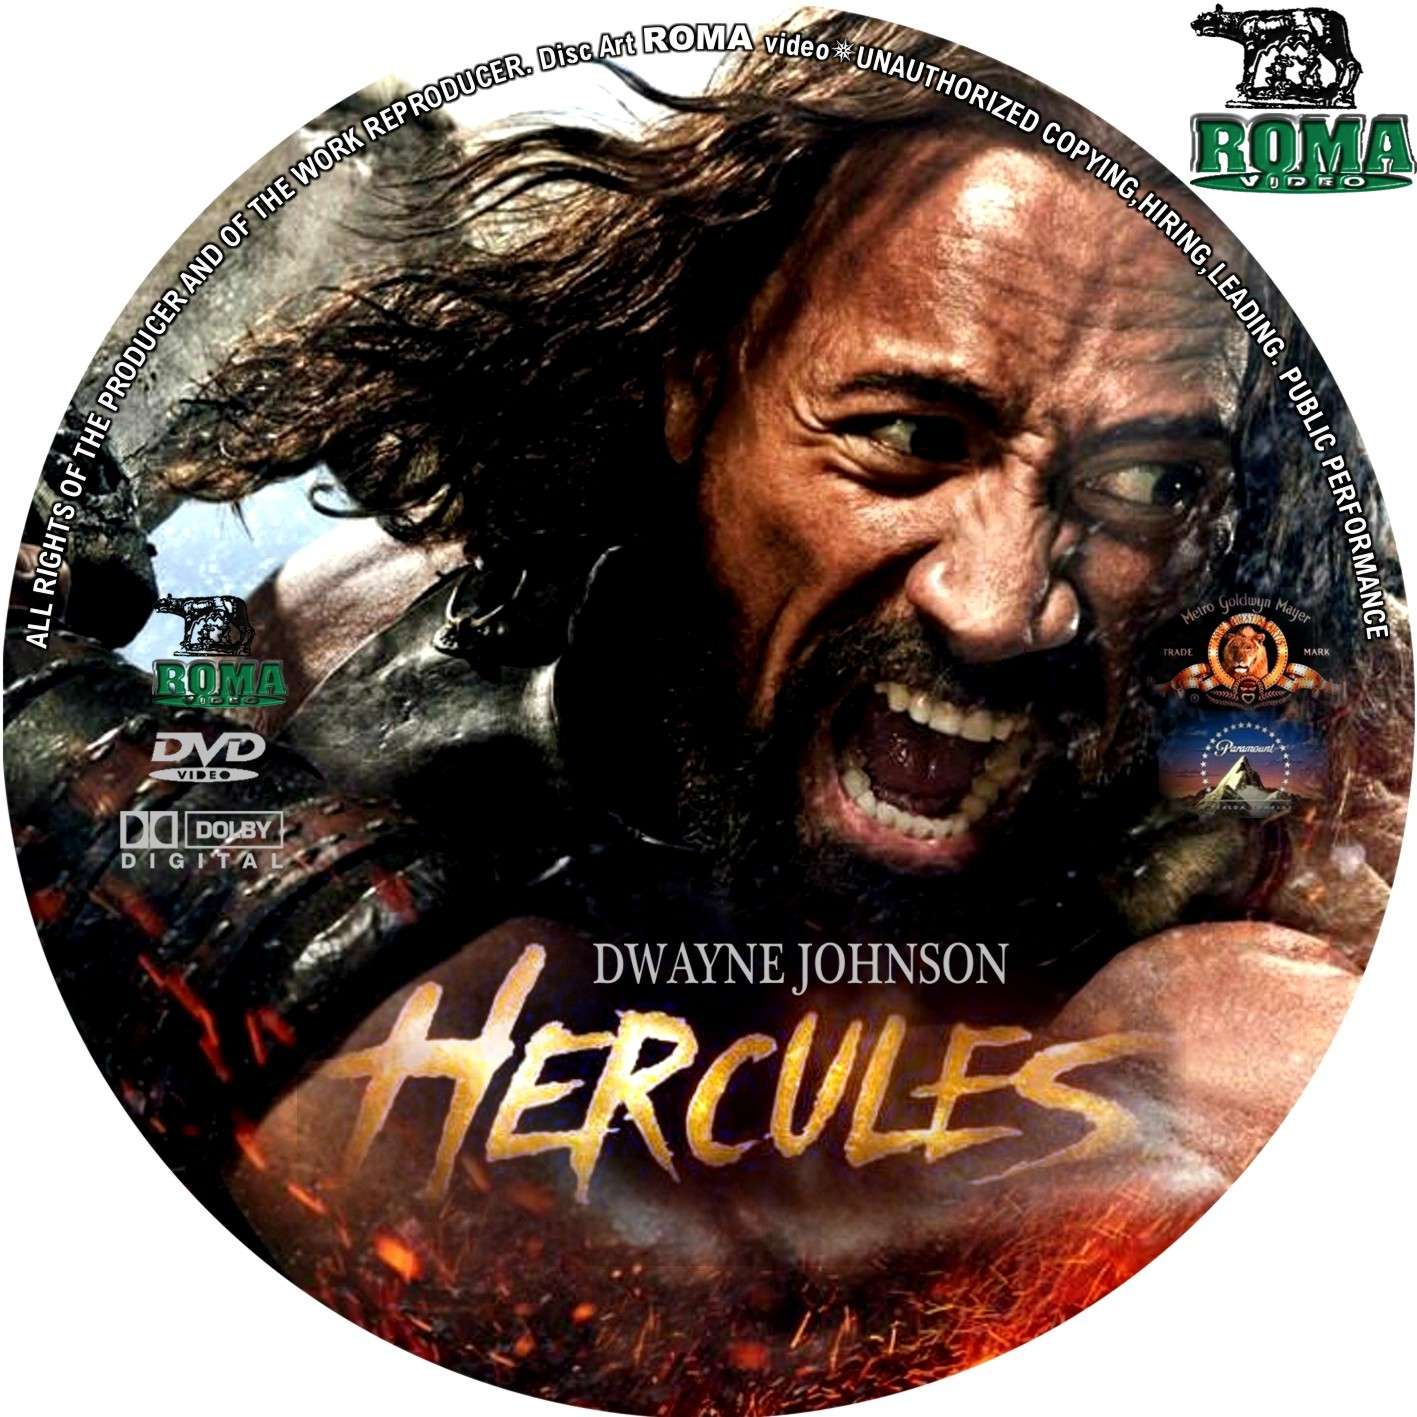 Hercules 2014 Dvd Cover